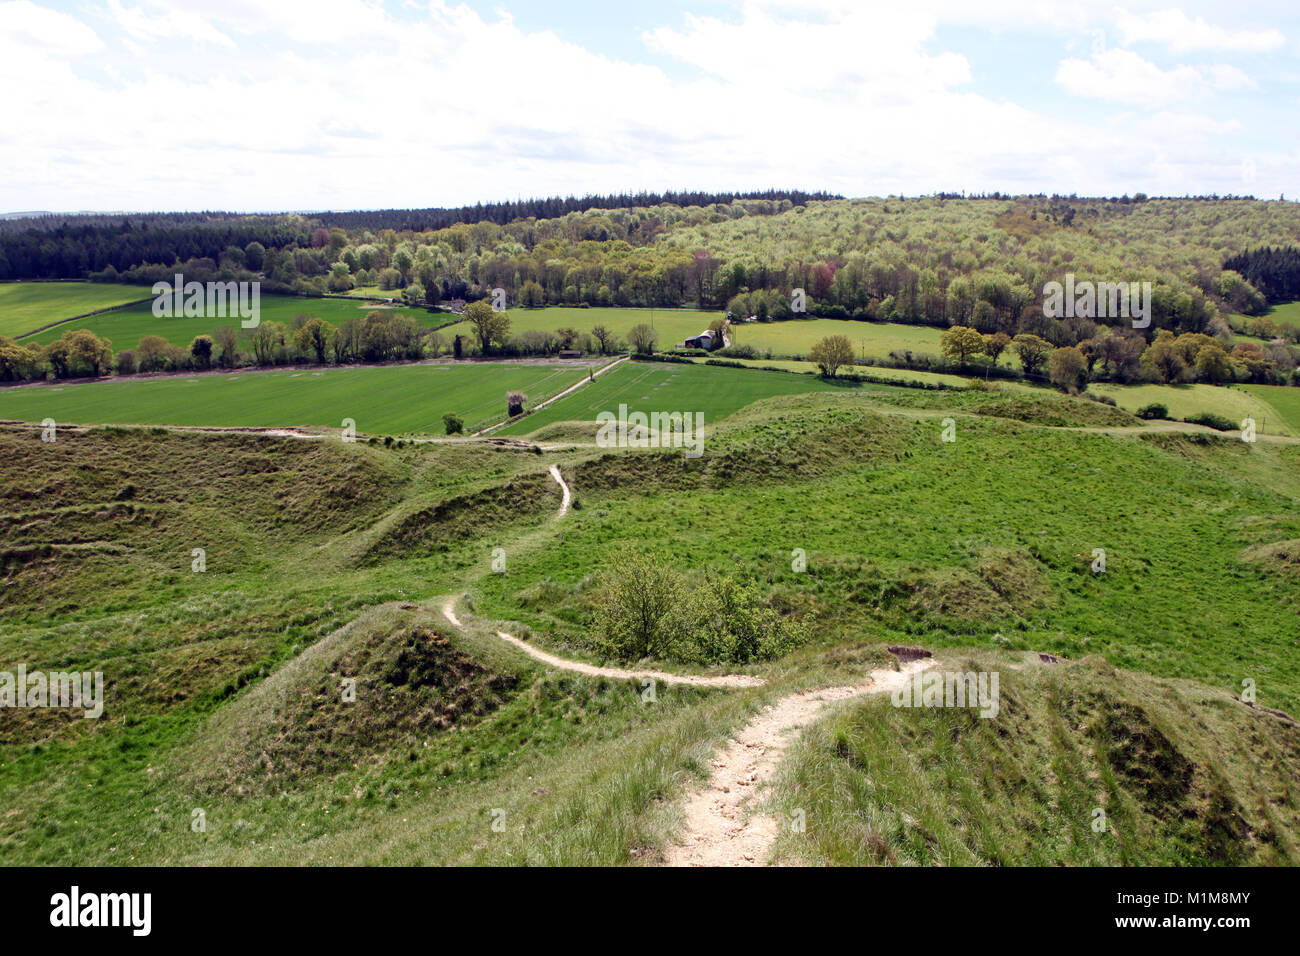 View from Cley Hill towards Longleat Estate in Wiltshire UK. - Stock Image